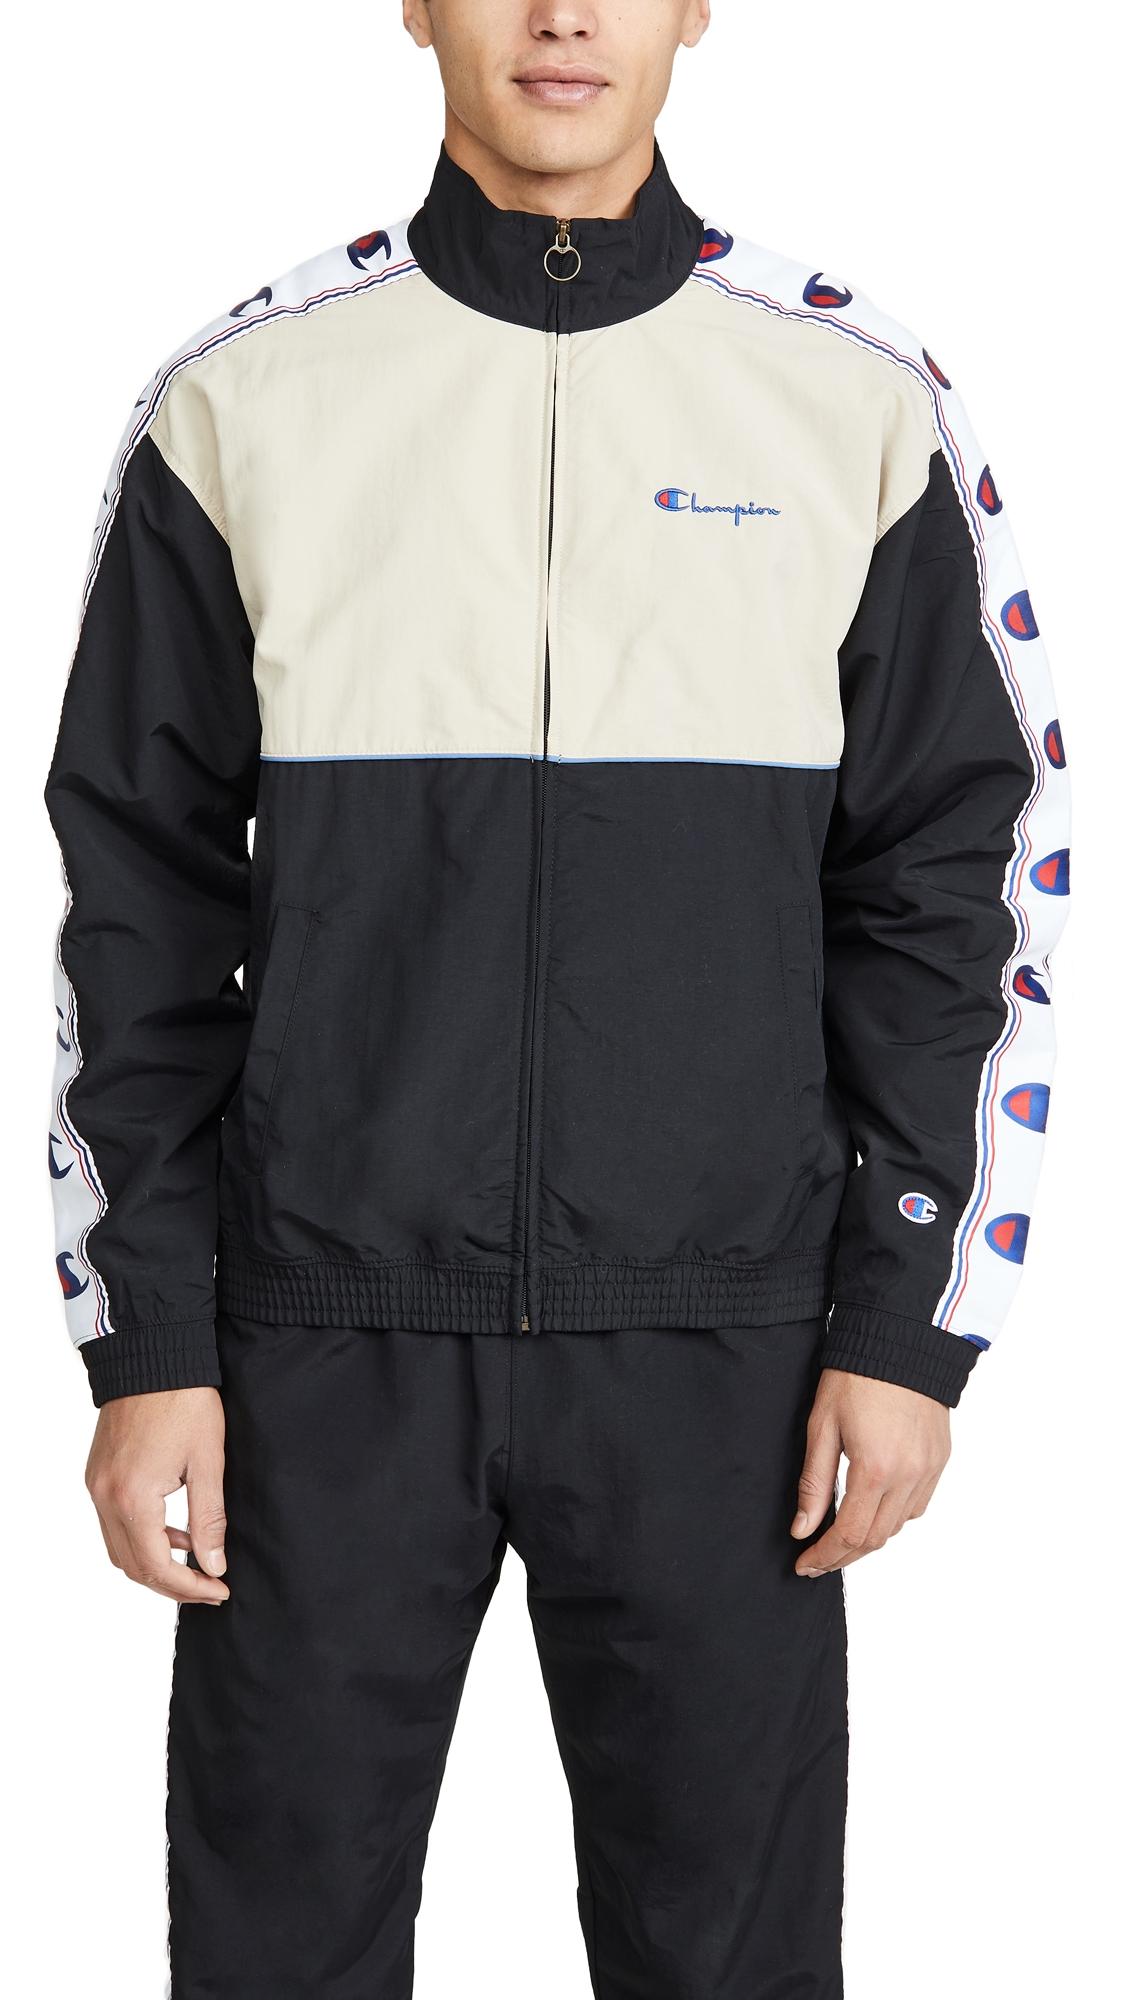 Champion Jackets FULL ZIP TRACK JACKET WITH TAPING